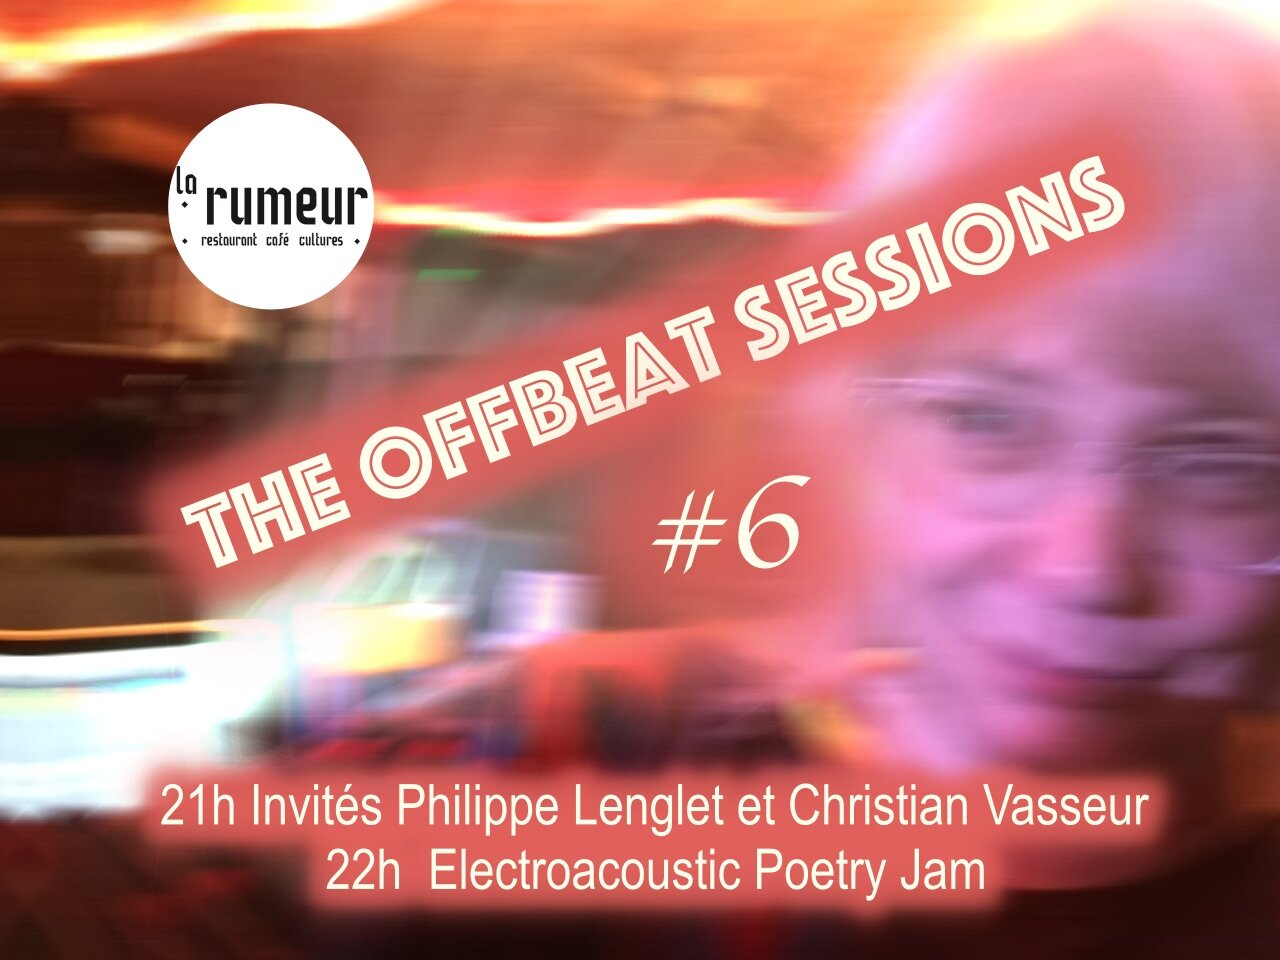 October 9th, 2019 La Rumeur, Lille, 57 rue de Valenciennes. Come for the electroacoustic poetry, stay for the jam!